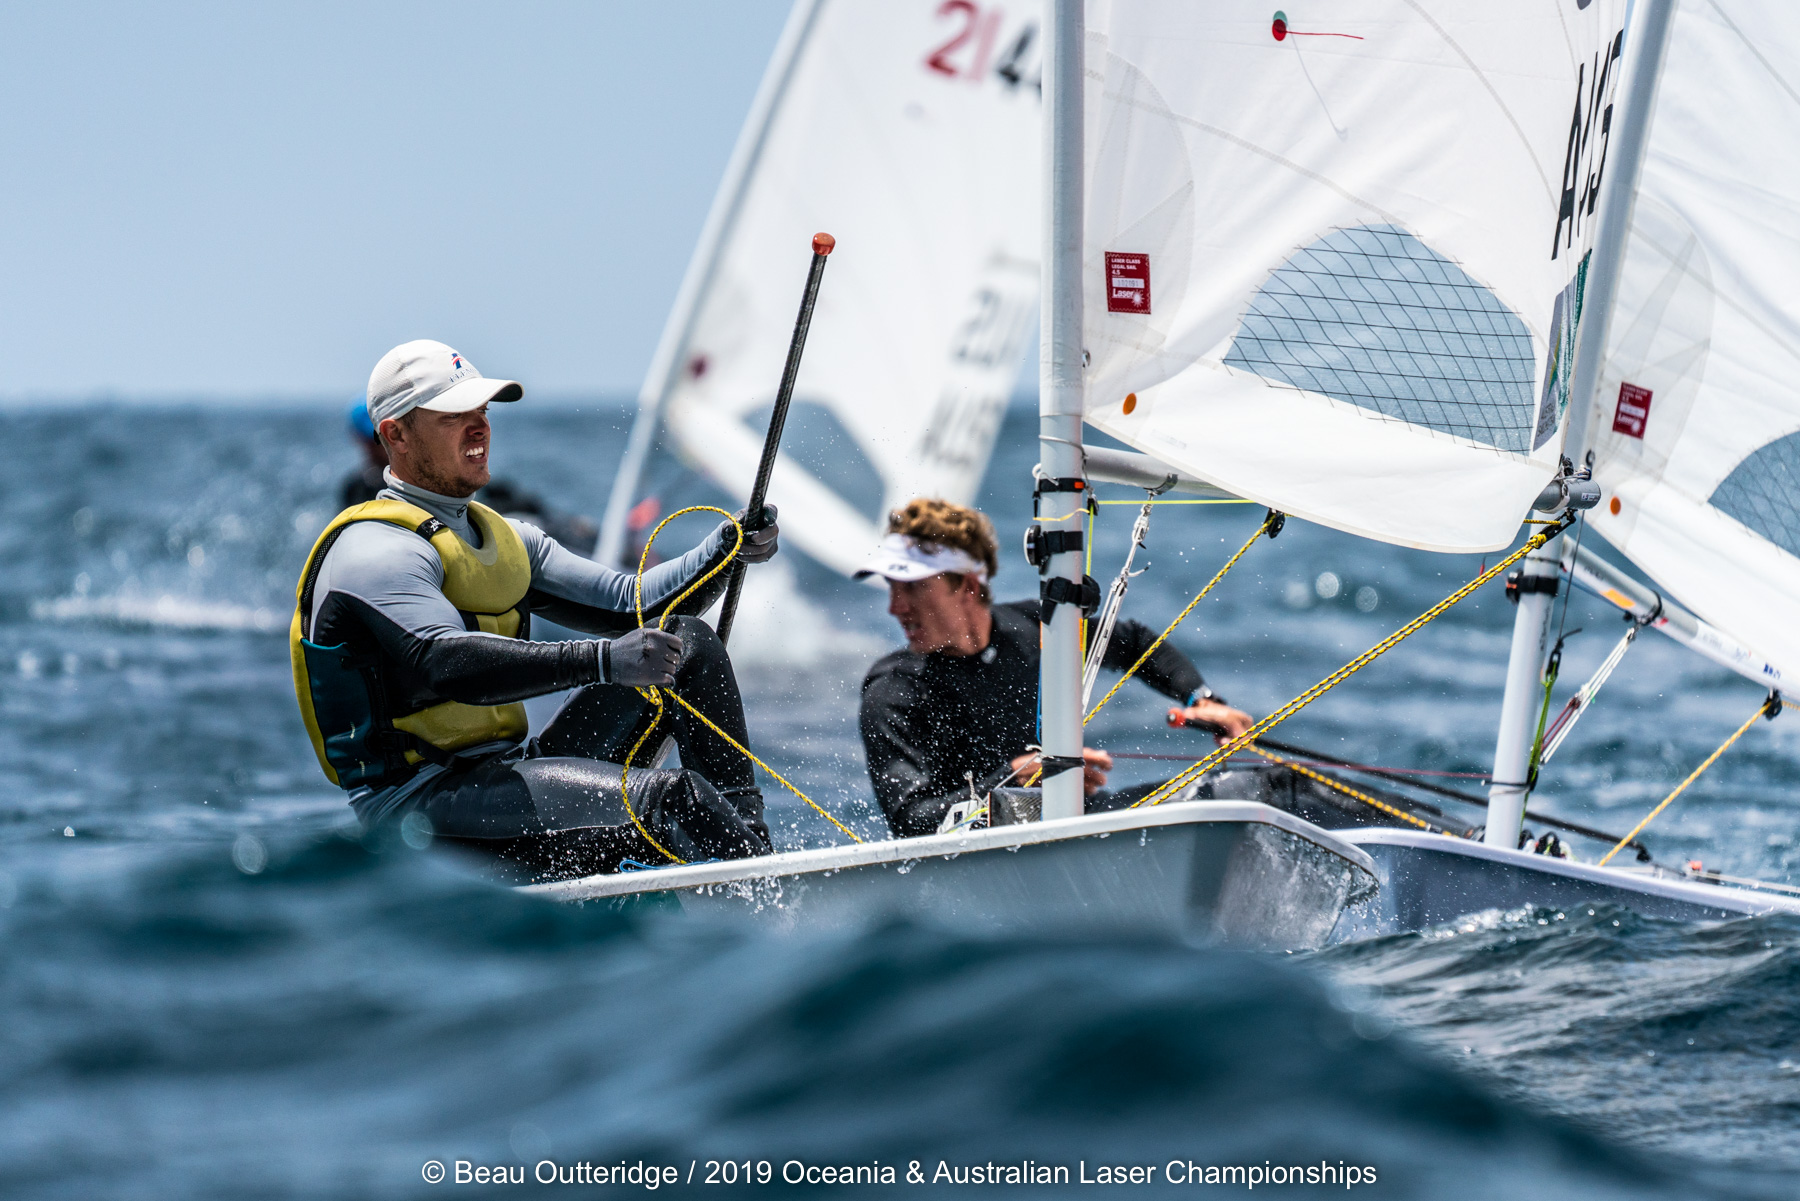 Competition will be fierce at the 2020 Australian Laser Championships. Photo Beau Outteridge/PSA.